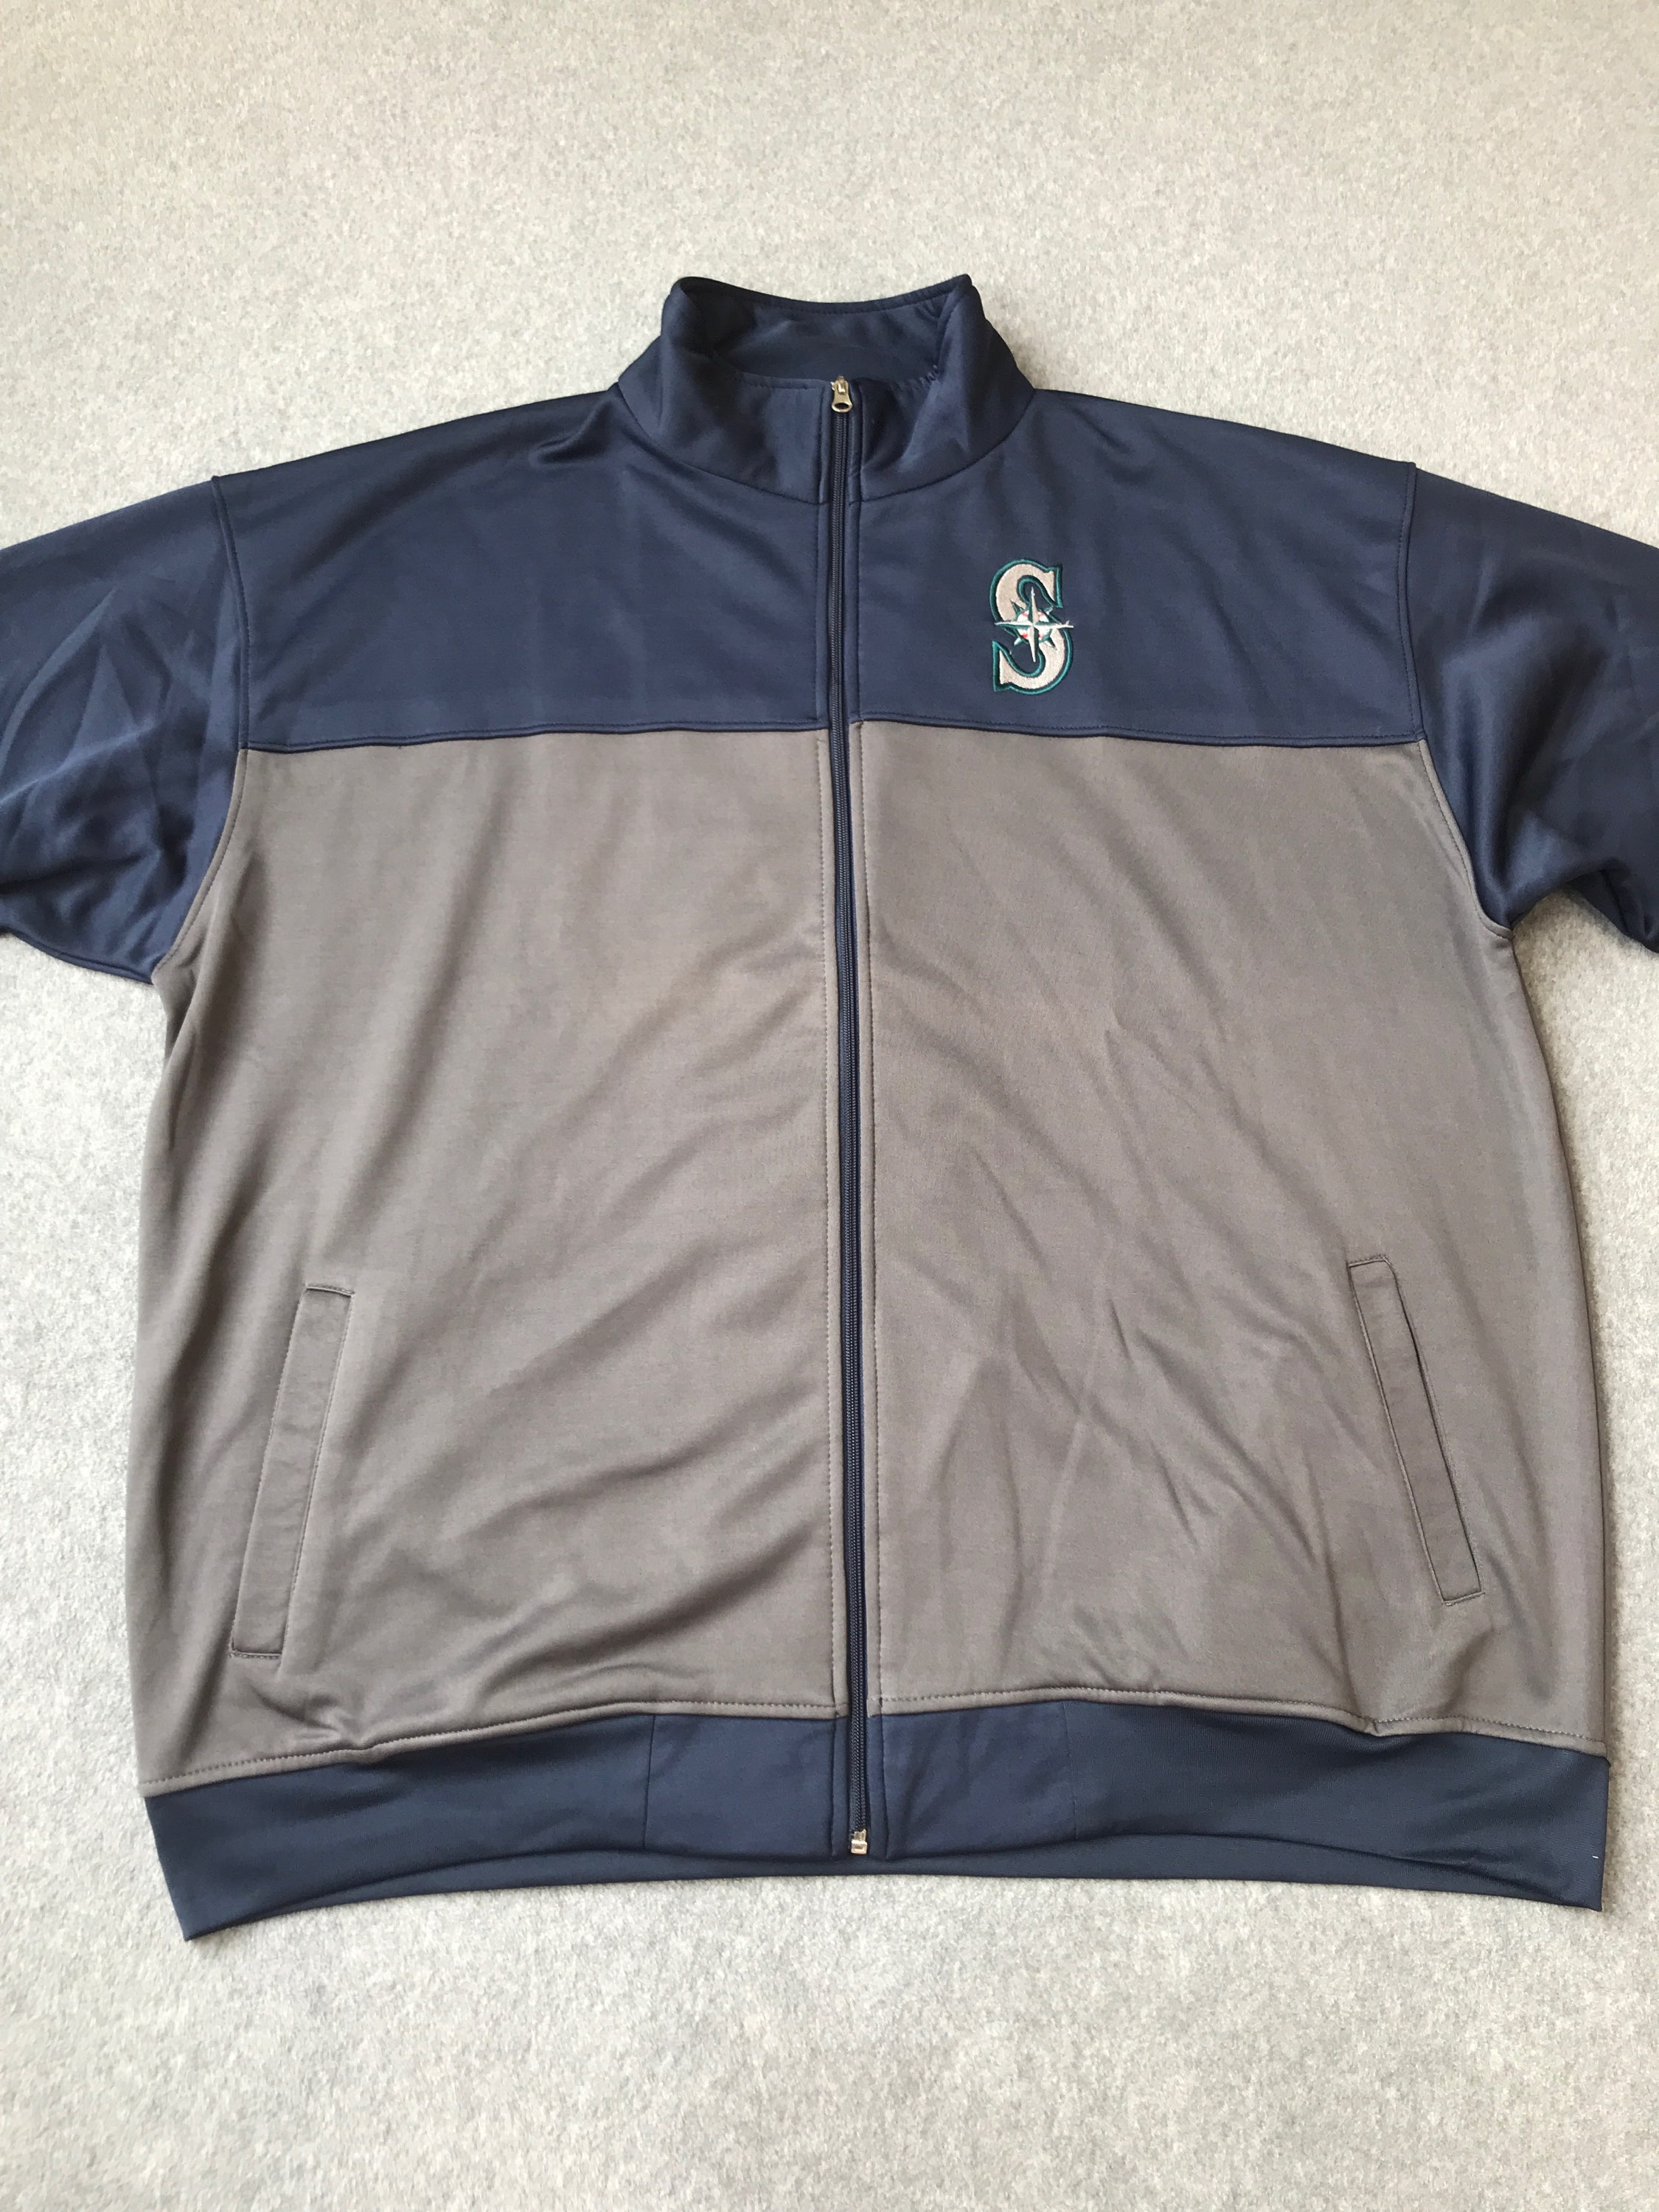 Mariners NWT 3XL Jacket